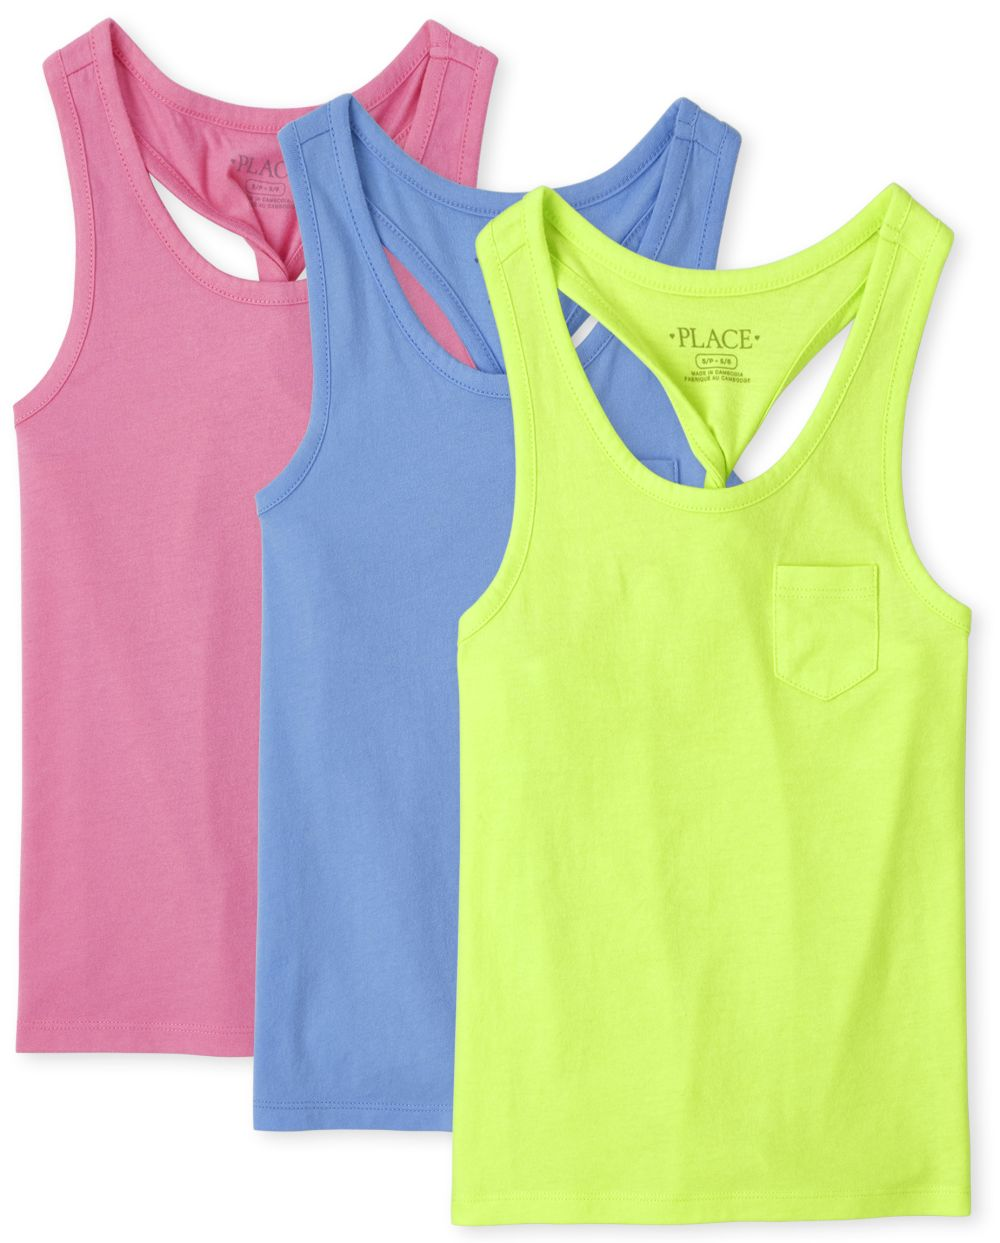 Girls Twist Back Tank Top 3-Pack - Blue